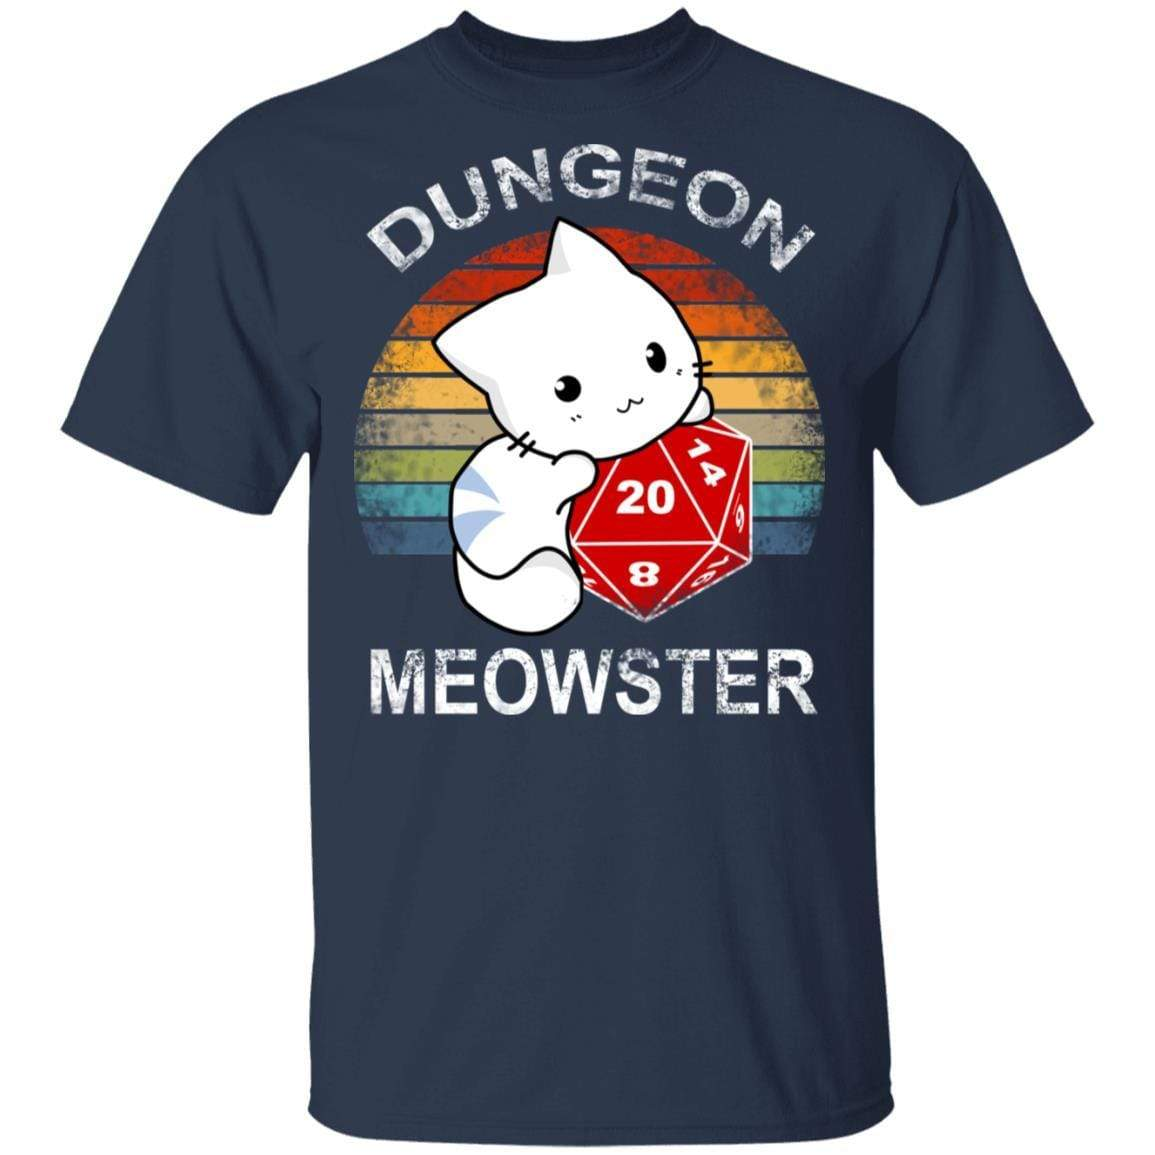 Dungeon Meowster Retro Vintage Funny Cat T-Shirts, Hoodies 1049-9966-90279036-48248 - Tee Ript